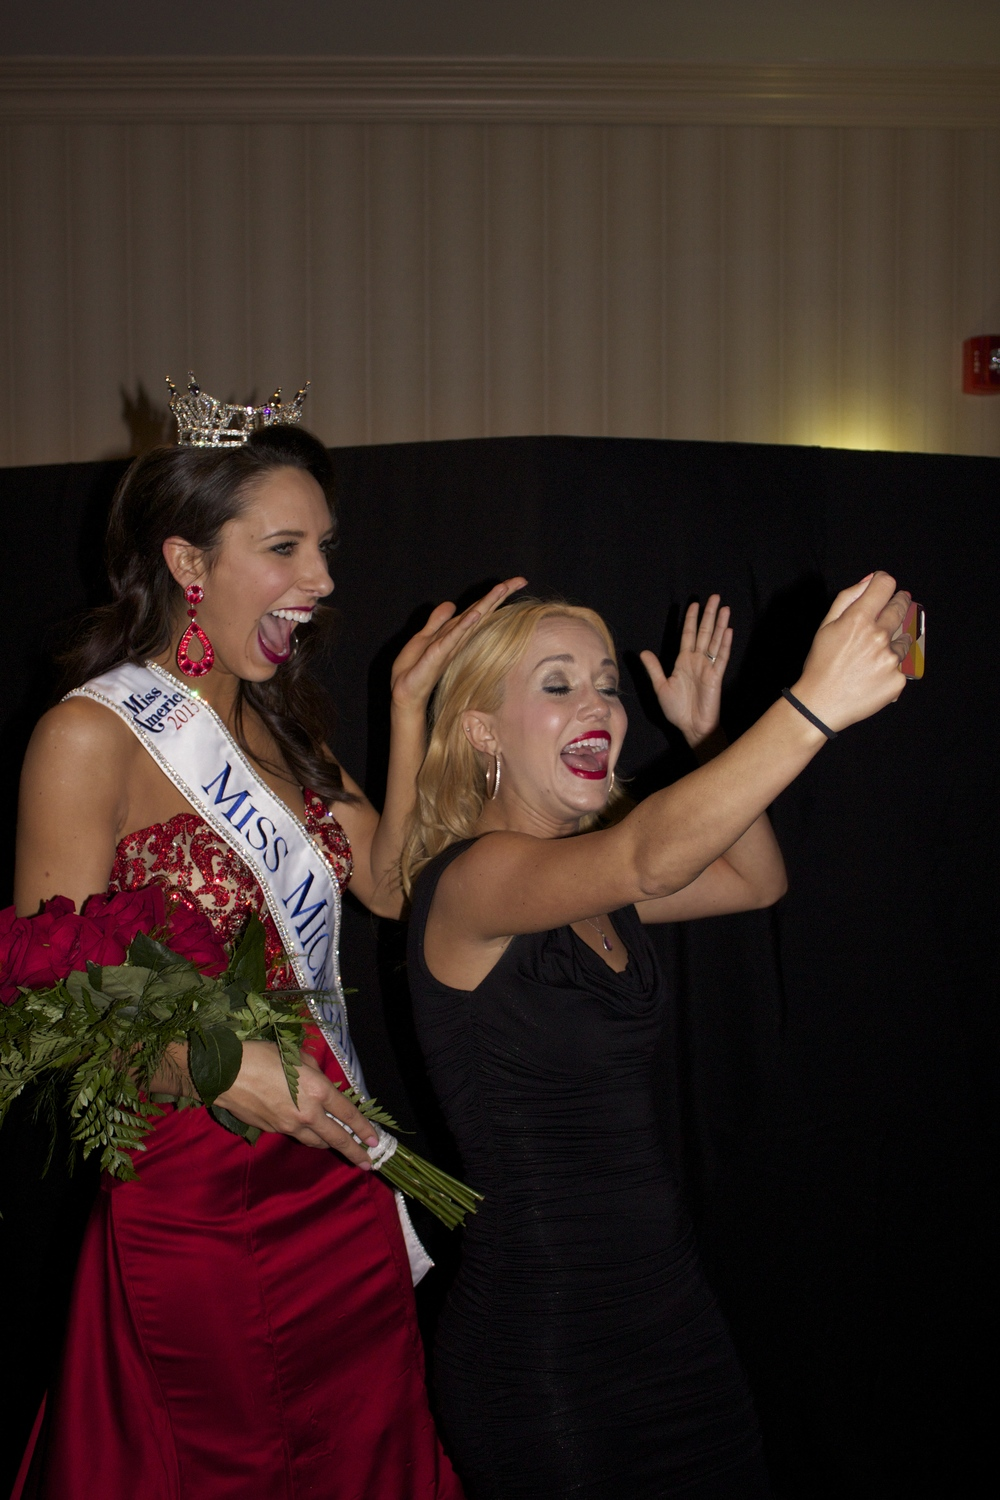 Taking a selfie video with the new Miss Michigan. :)